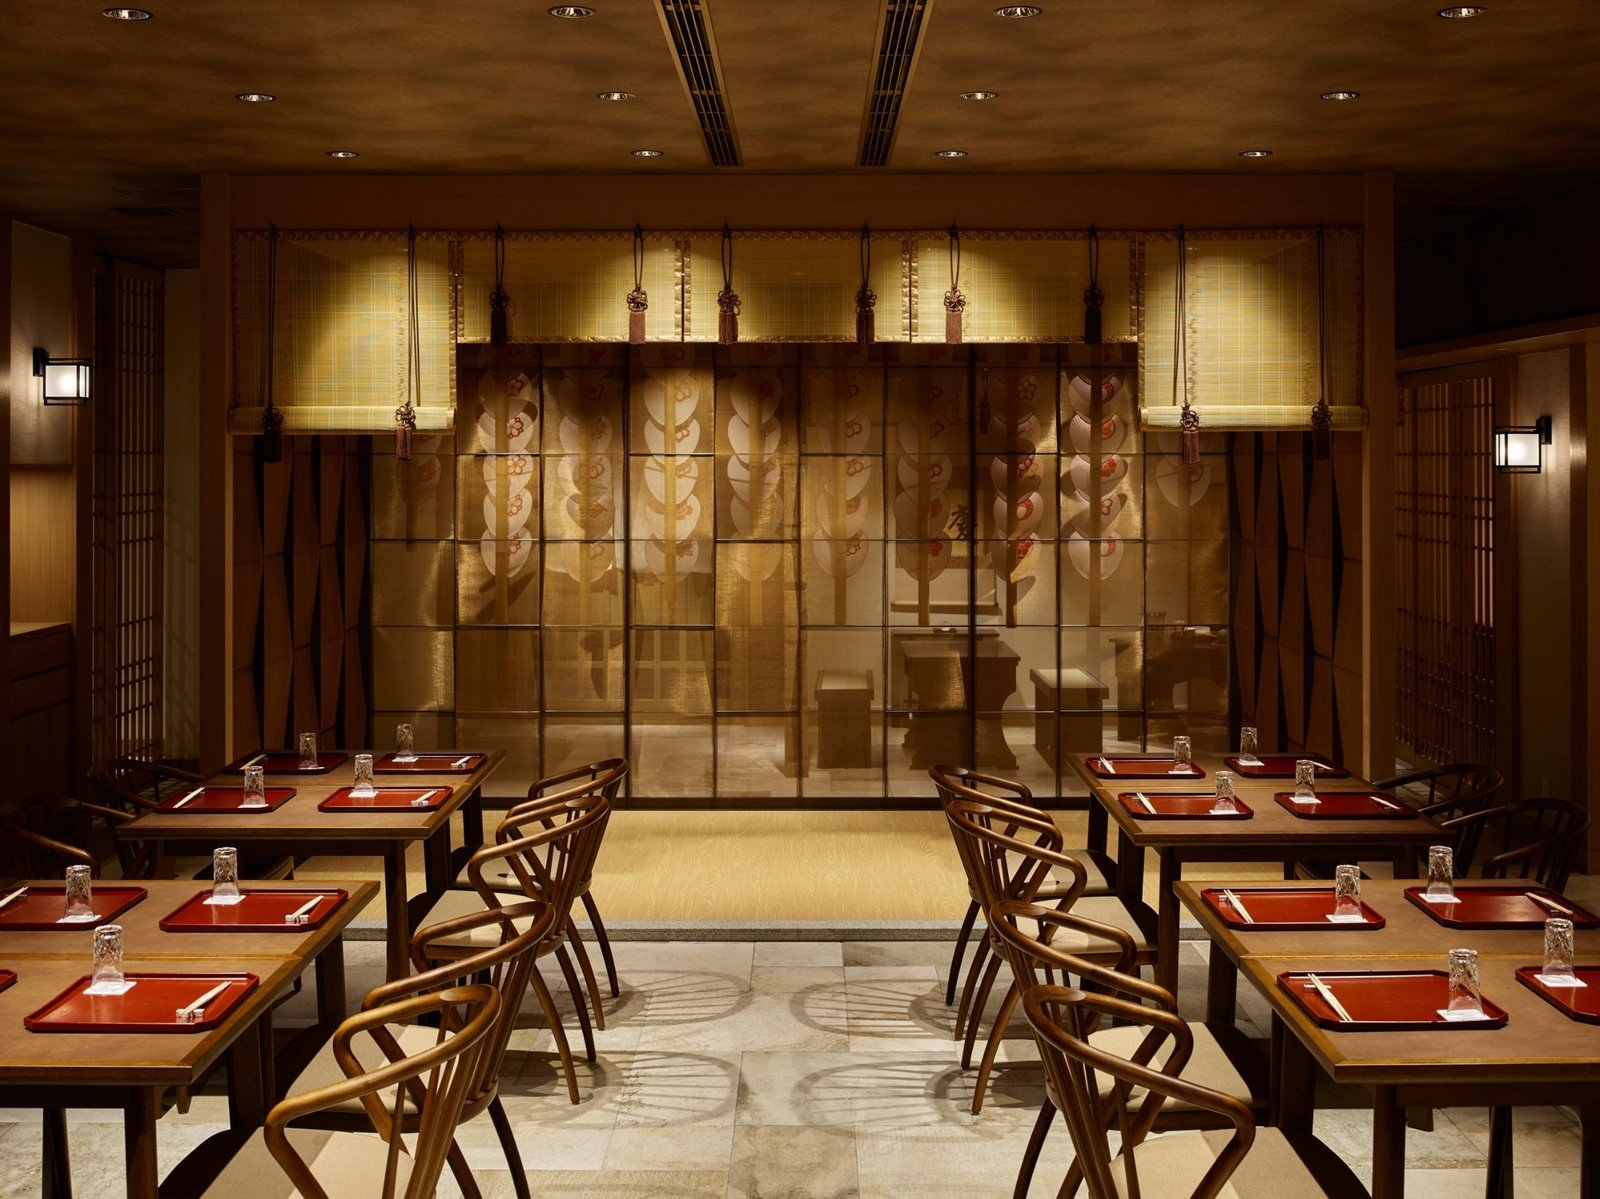 Dining Room, Recessed Lighting, Chair, and Table  Hotel The Celestine Kyoto Gion